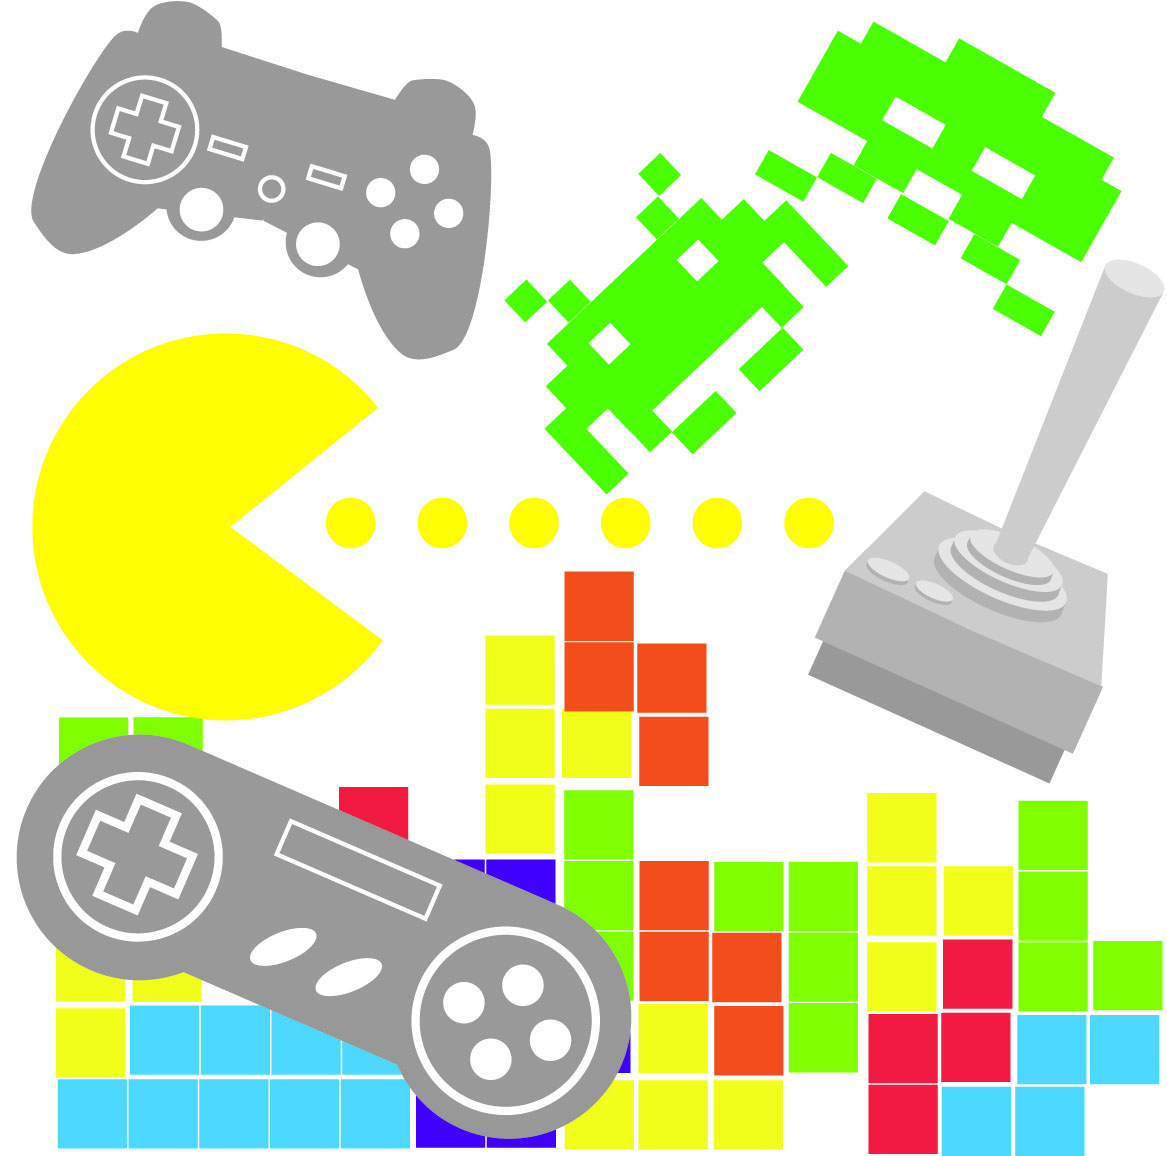 Level Up Gaming Club Helps Students Build Friendships, Develop.